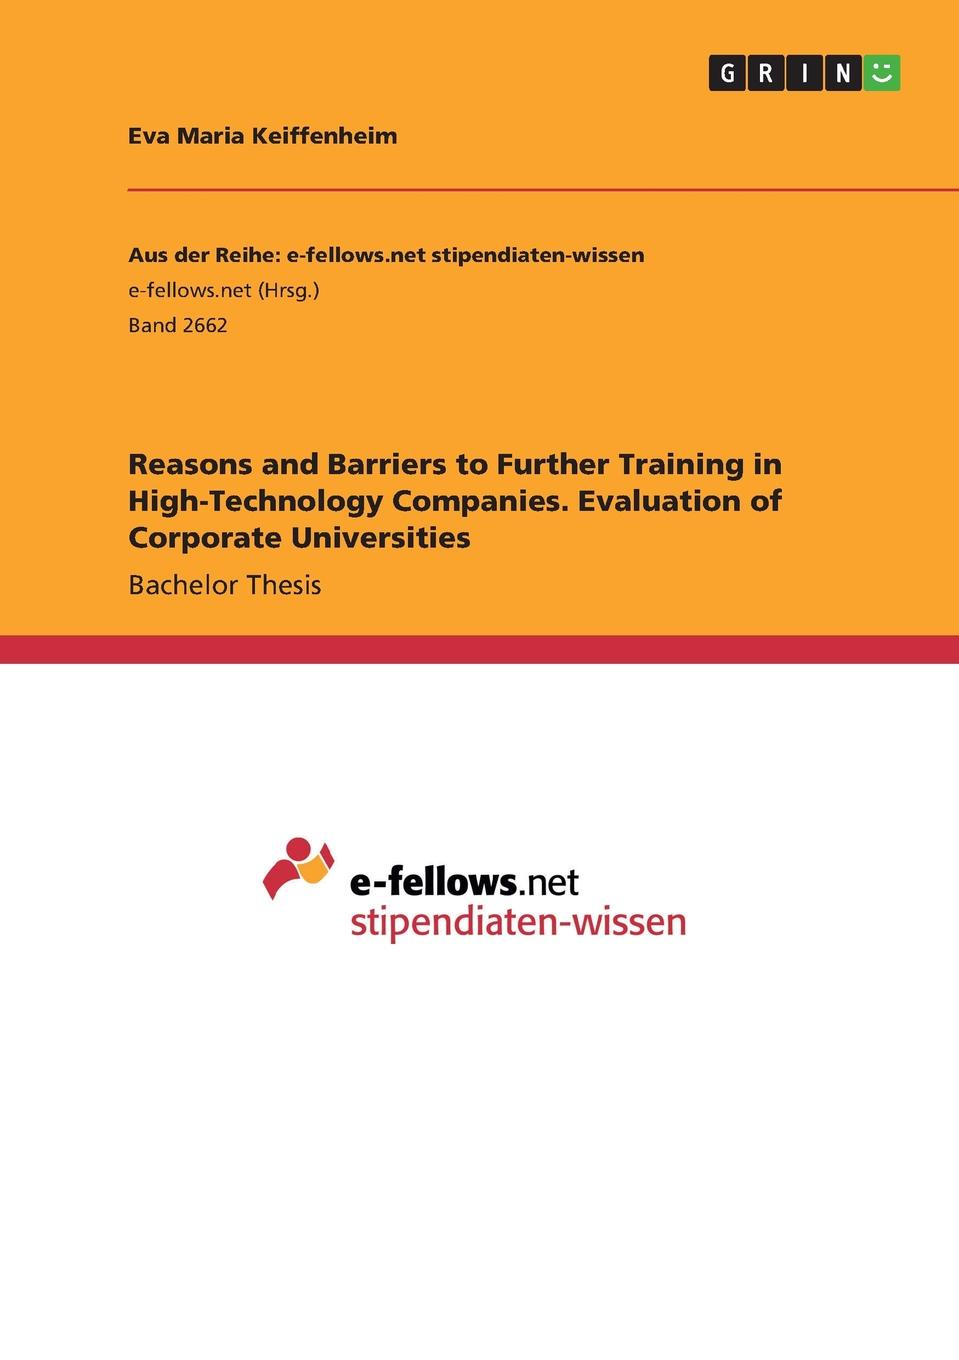 Eva Maria Keiffenheim Reasons and Barriers to Further Training in High-Technology Companies. Evaluation of Corporate Universities impact of vocational training on students page 2